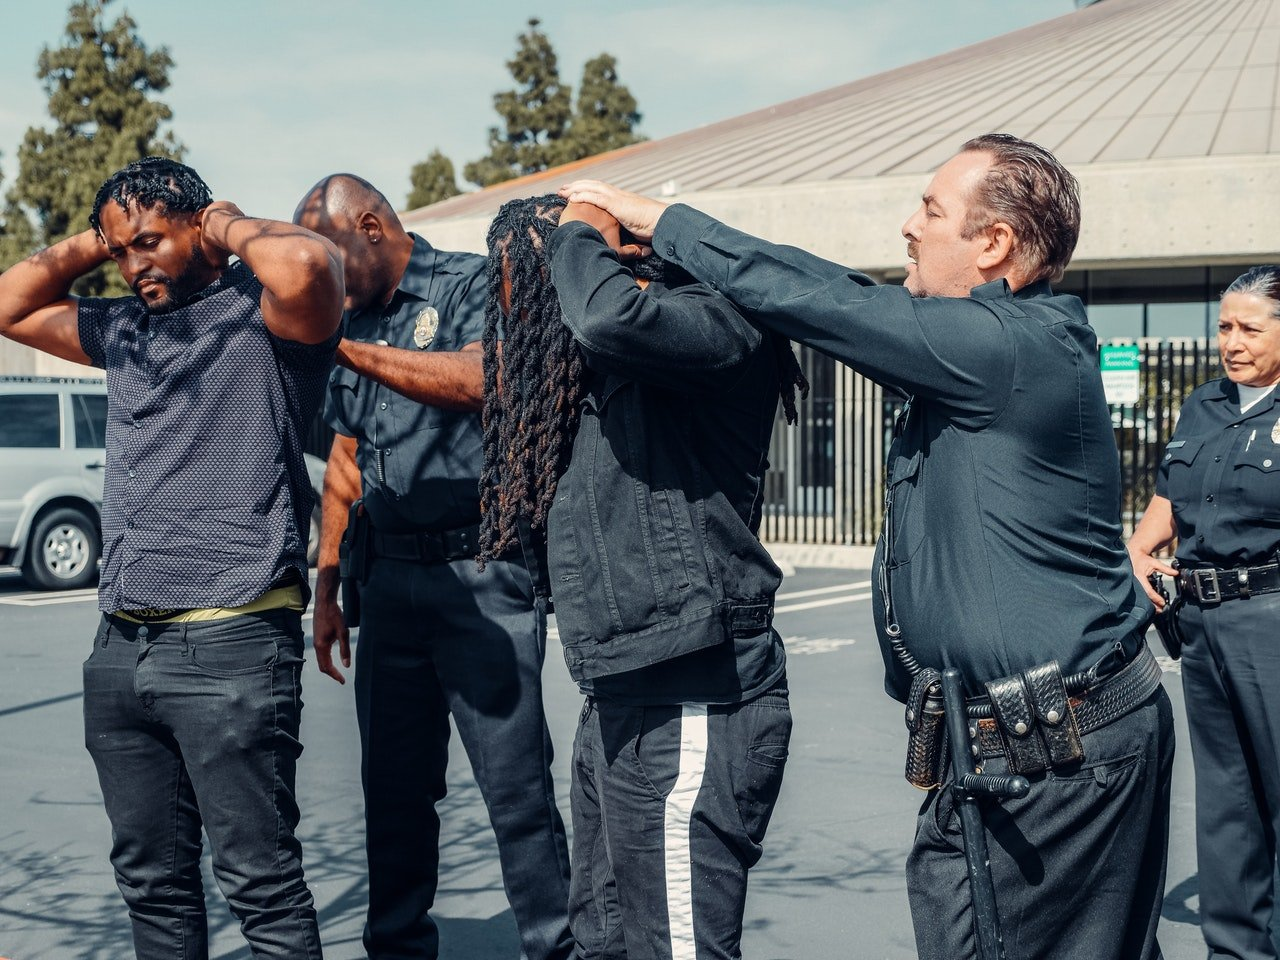 Police officers making an arrest | Photo: Pexels